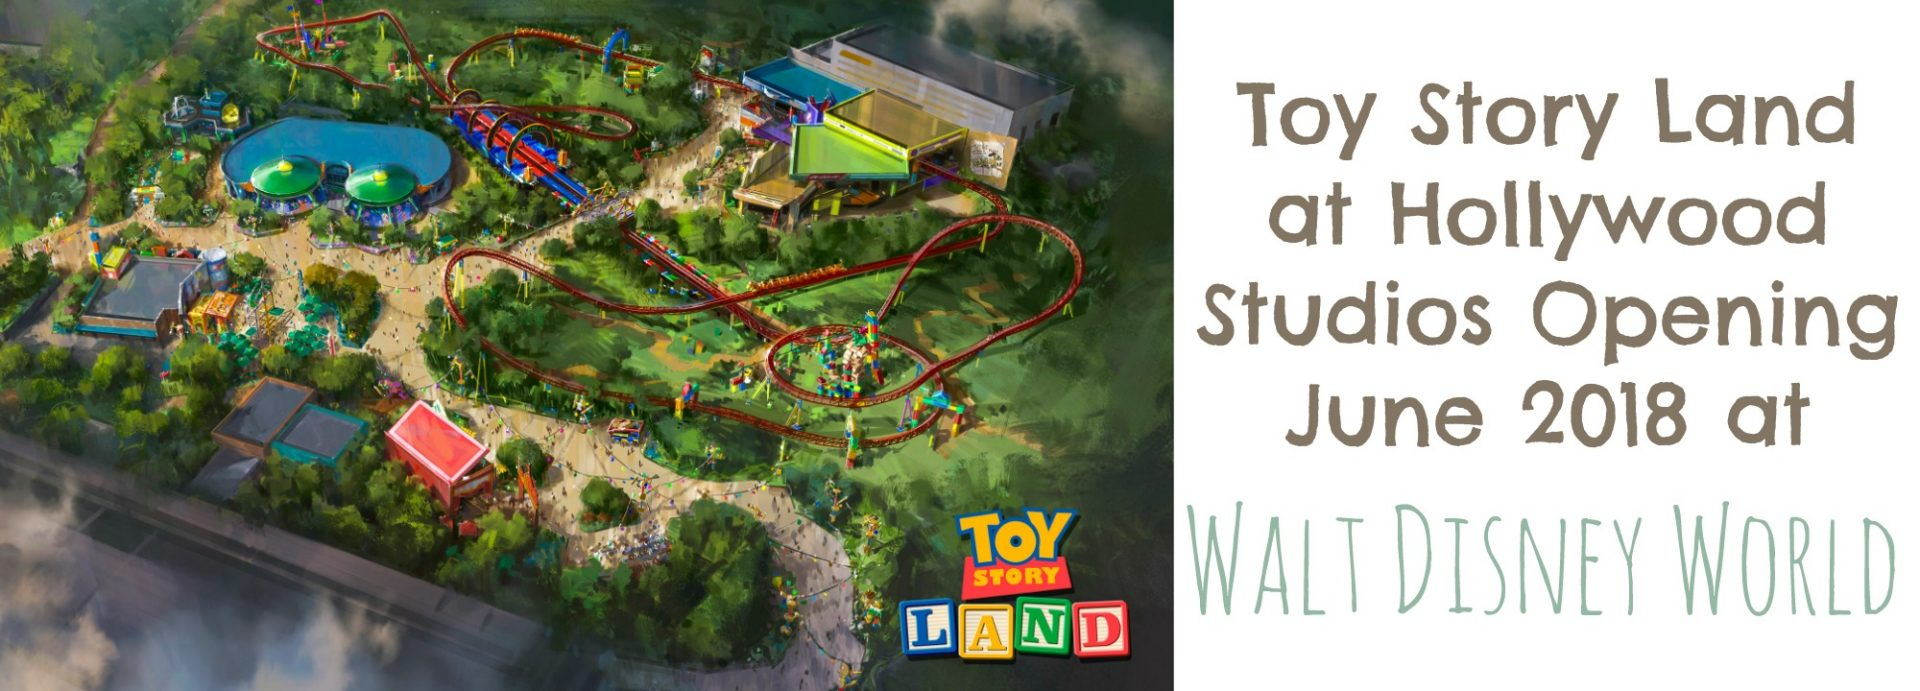 Toy Story Land at Hollywood Studios | MyPixieDustDiary.com | Toy Story Land is opening June 2018 at Disney's Hollywood Studios with lots of new attractions and experiences